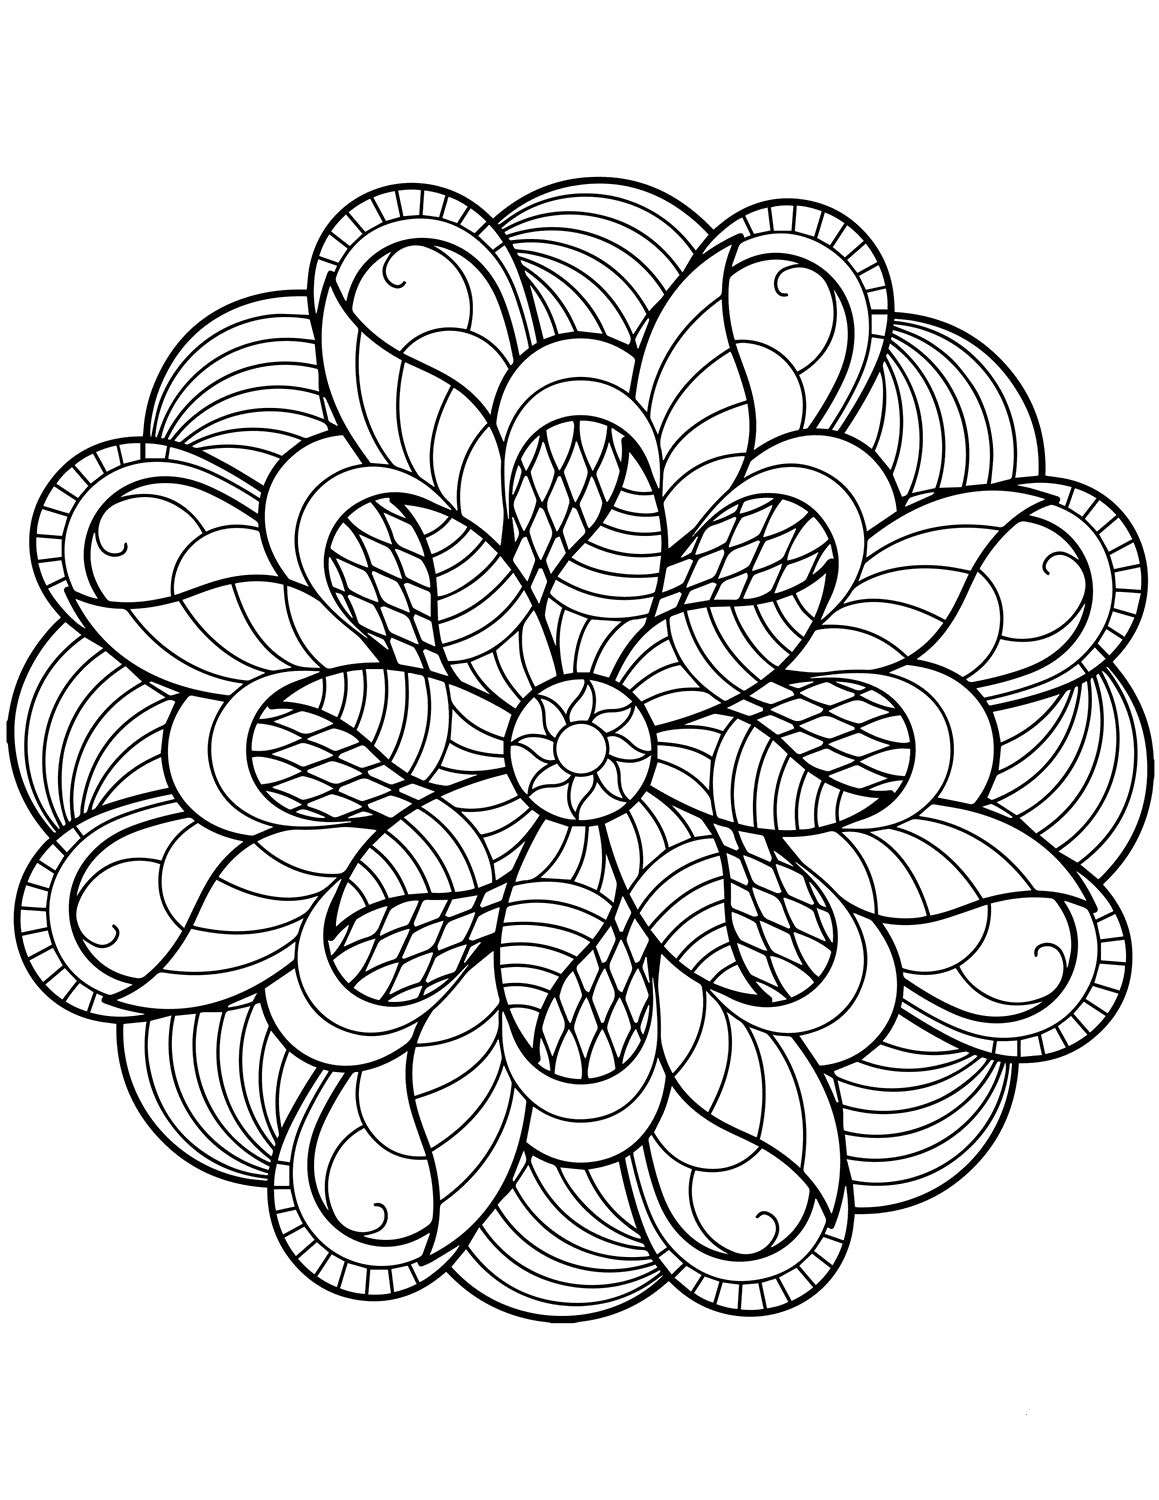 free printable mandalas for adults free printable mandala coloring pages for adults best mandalas for printable free adults